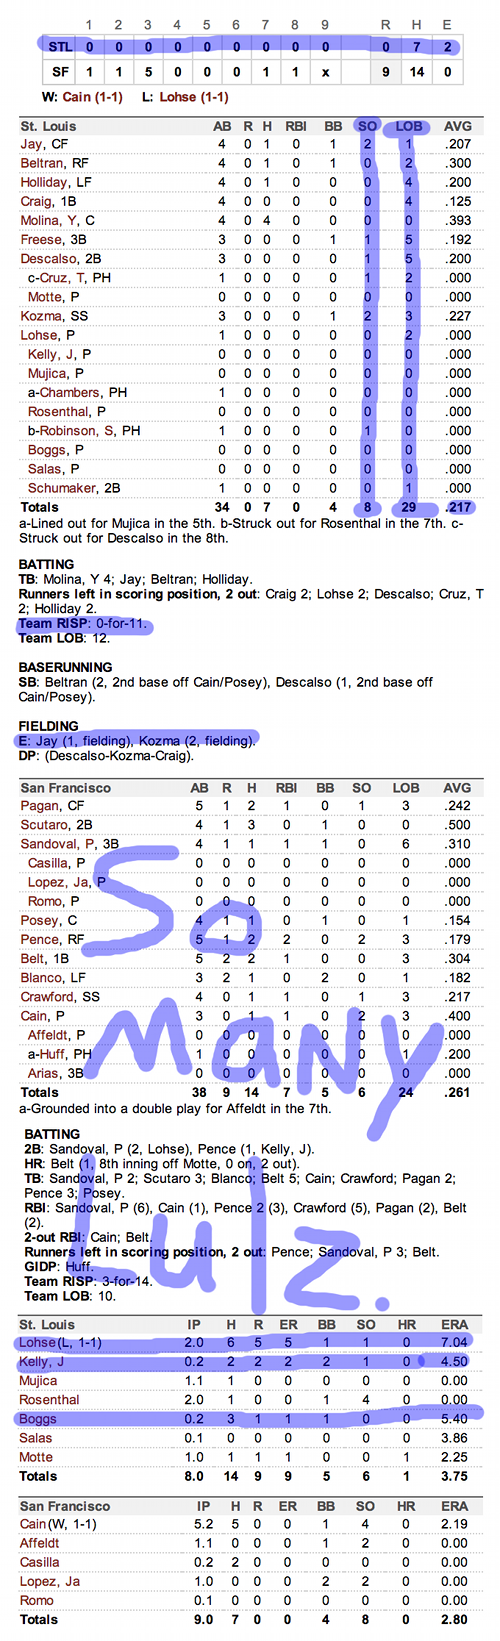 Enhanced Box Score: Cardinals 0, Giants 9 – 2012 NLCS Game Seven